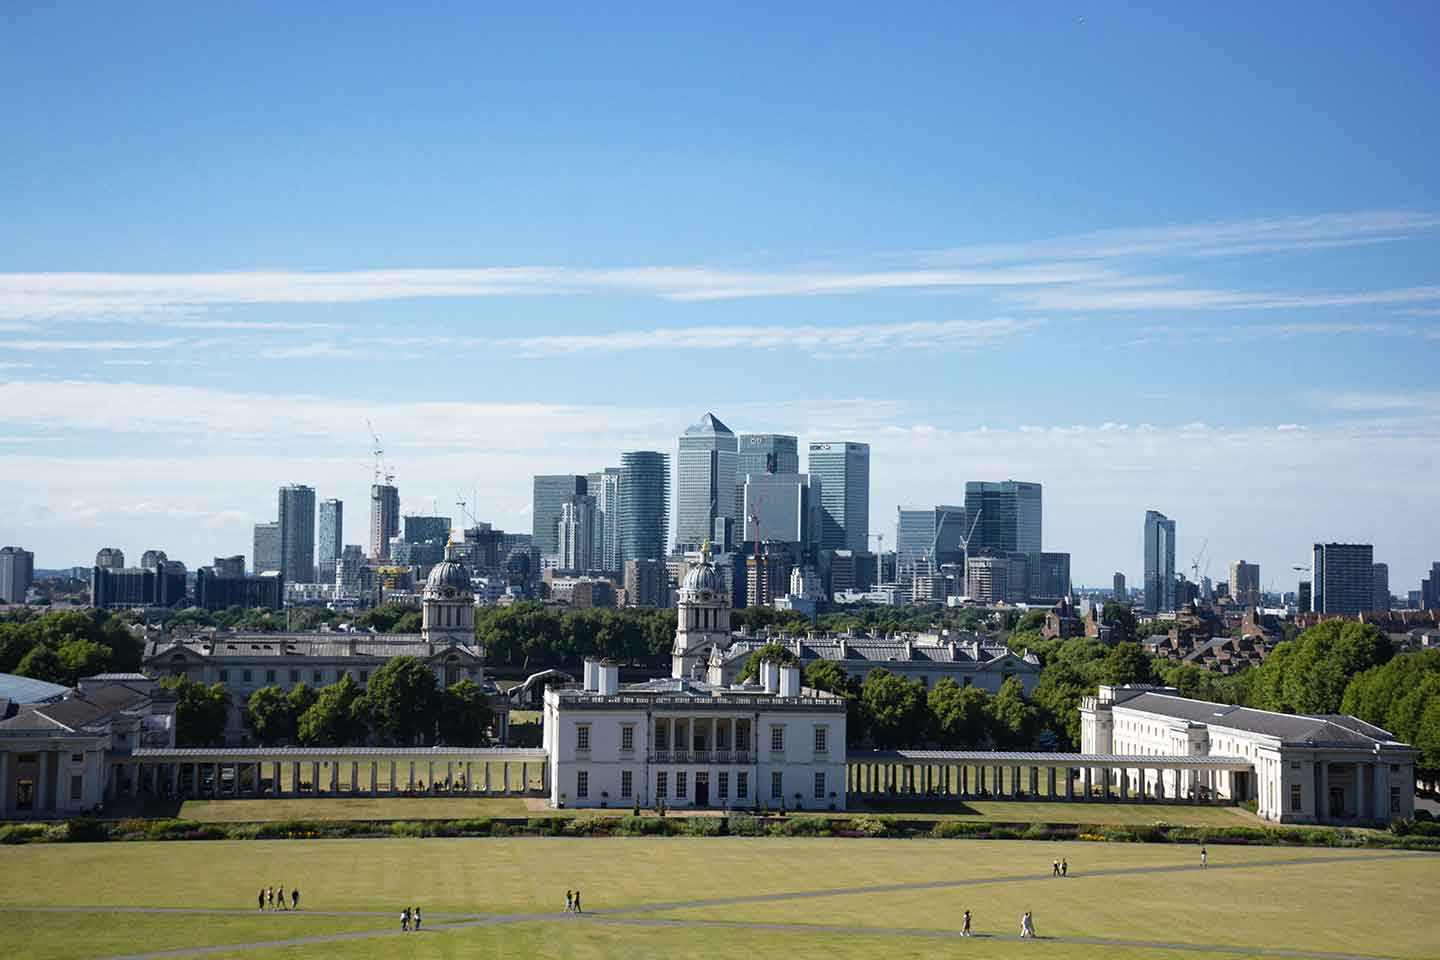 Canary Wharf to Greenwich Walk - Explore Canary Wharf's financial district and Greenwich through a beautiful nature walk.